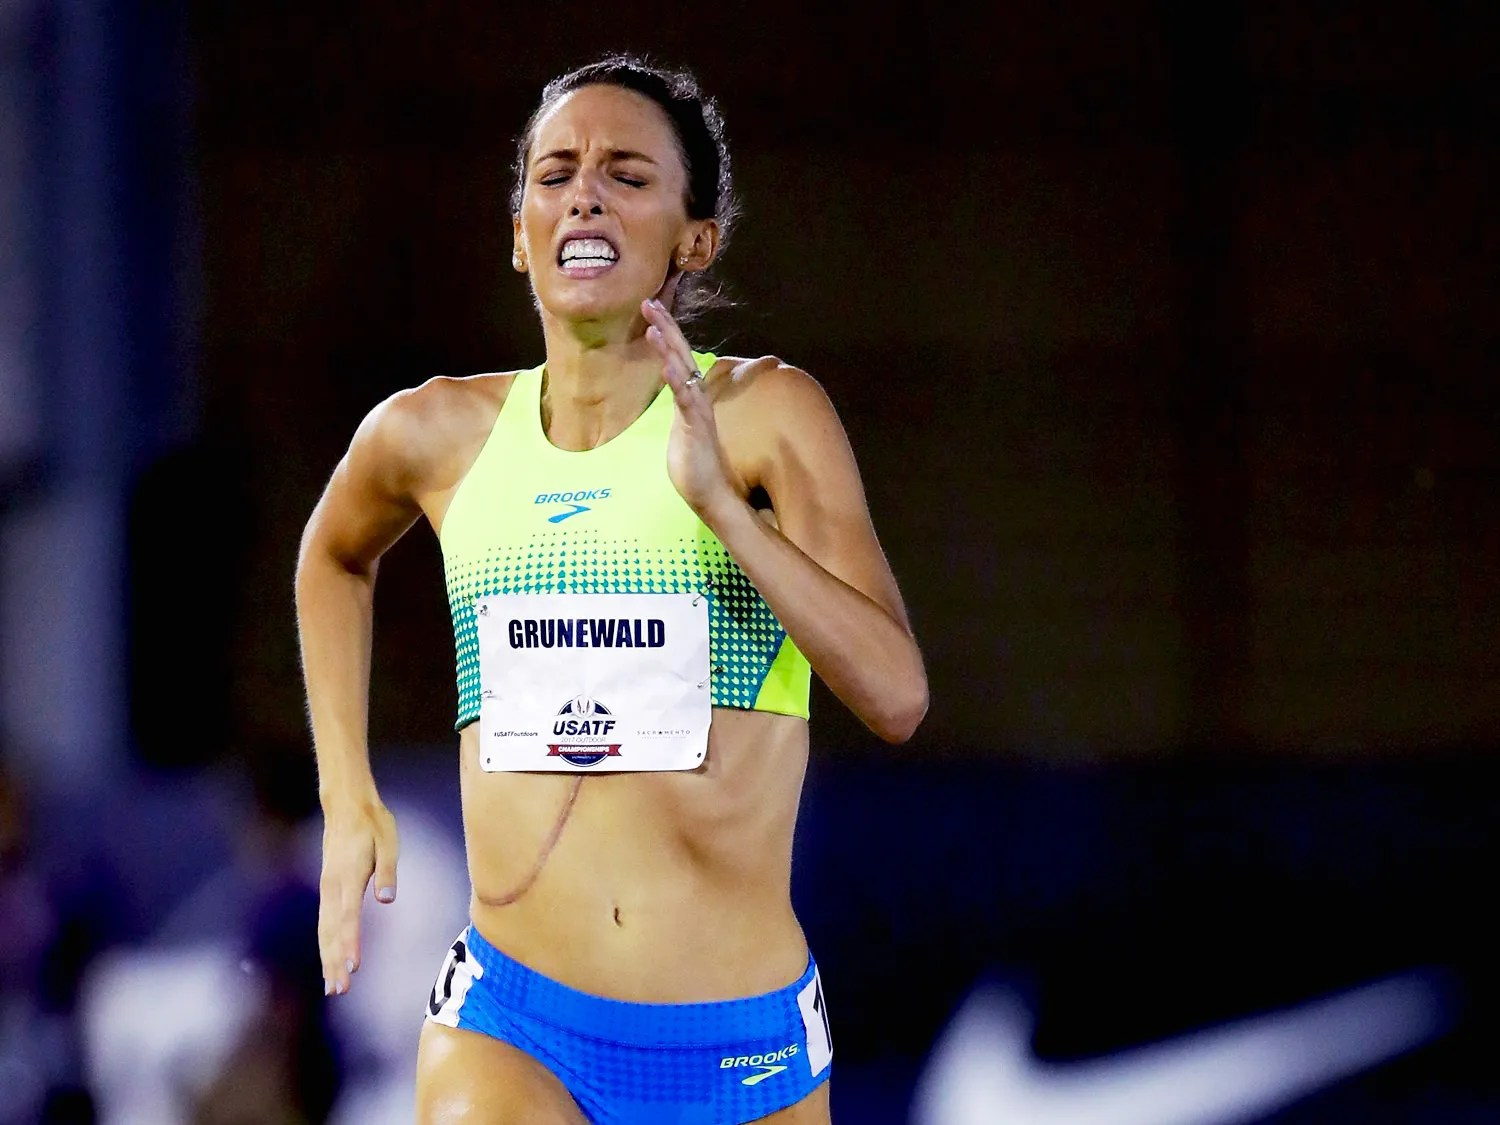 Remembering Gabriele Grunewald Who Ran For Herself And Others